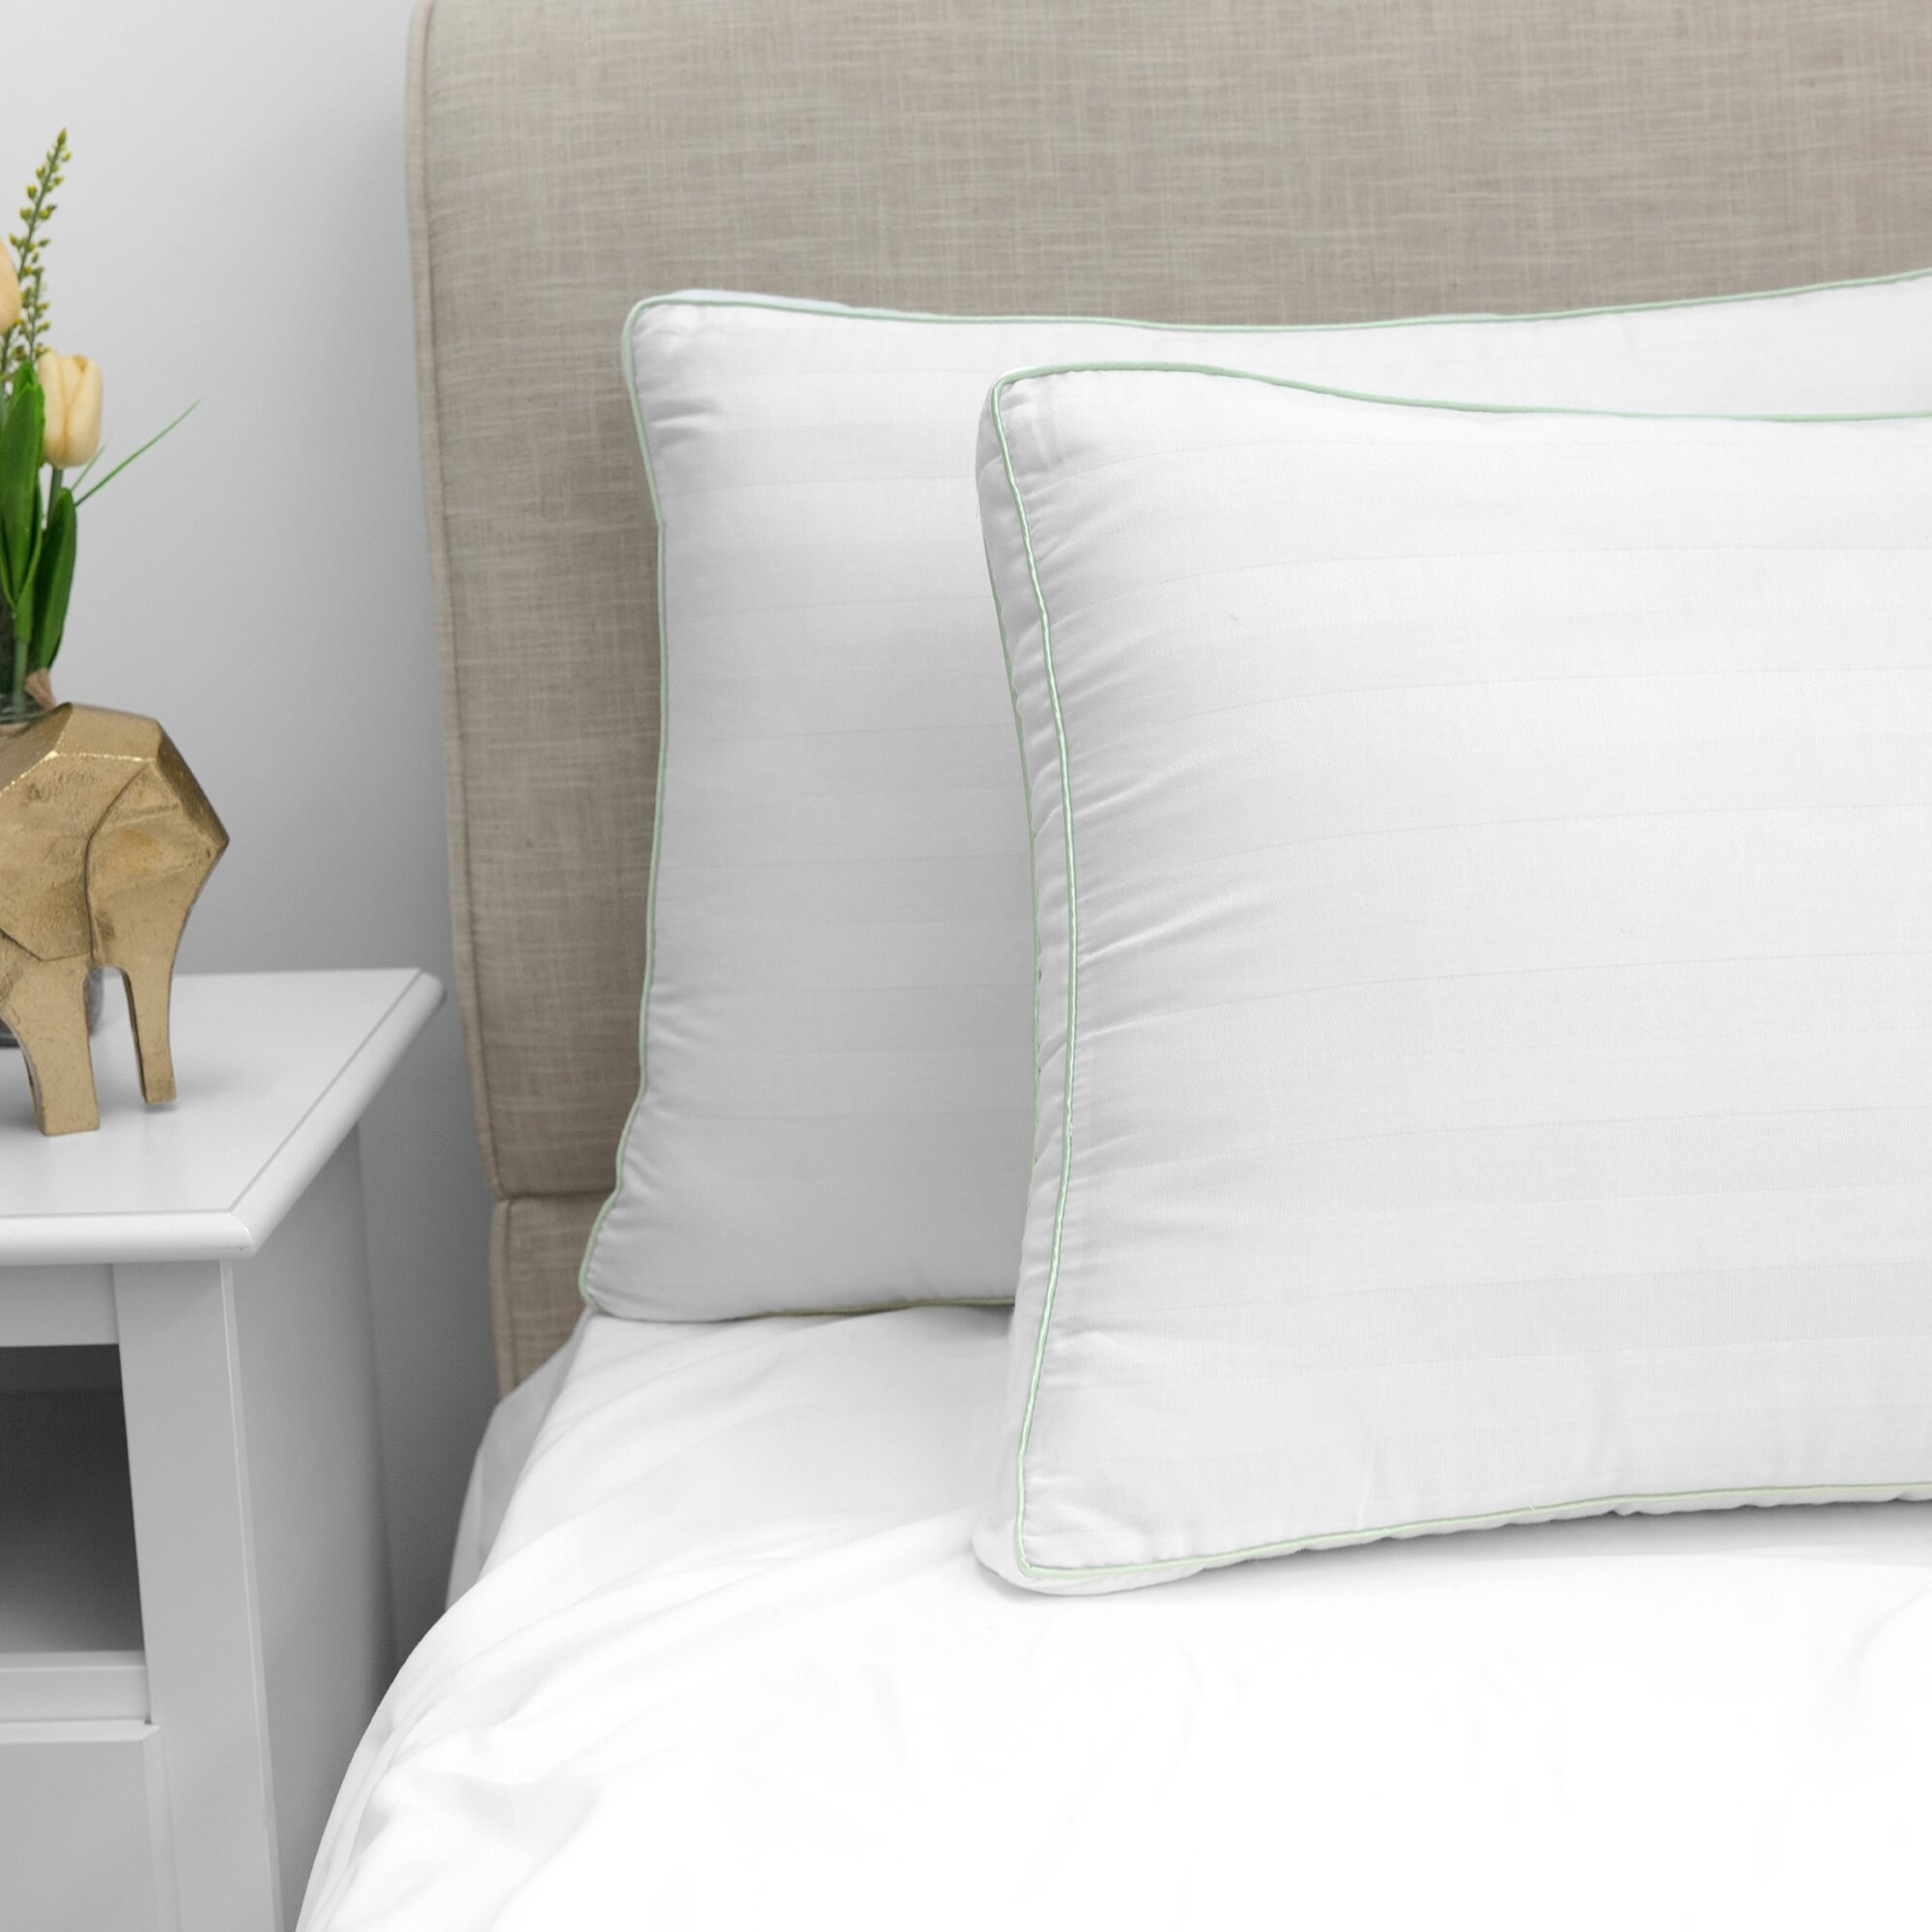 Pillows placed on bed